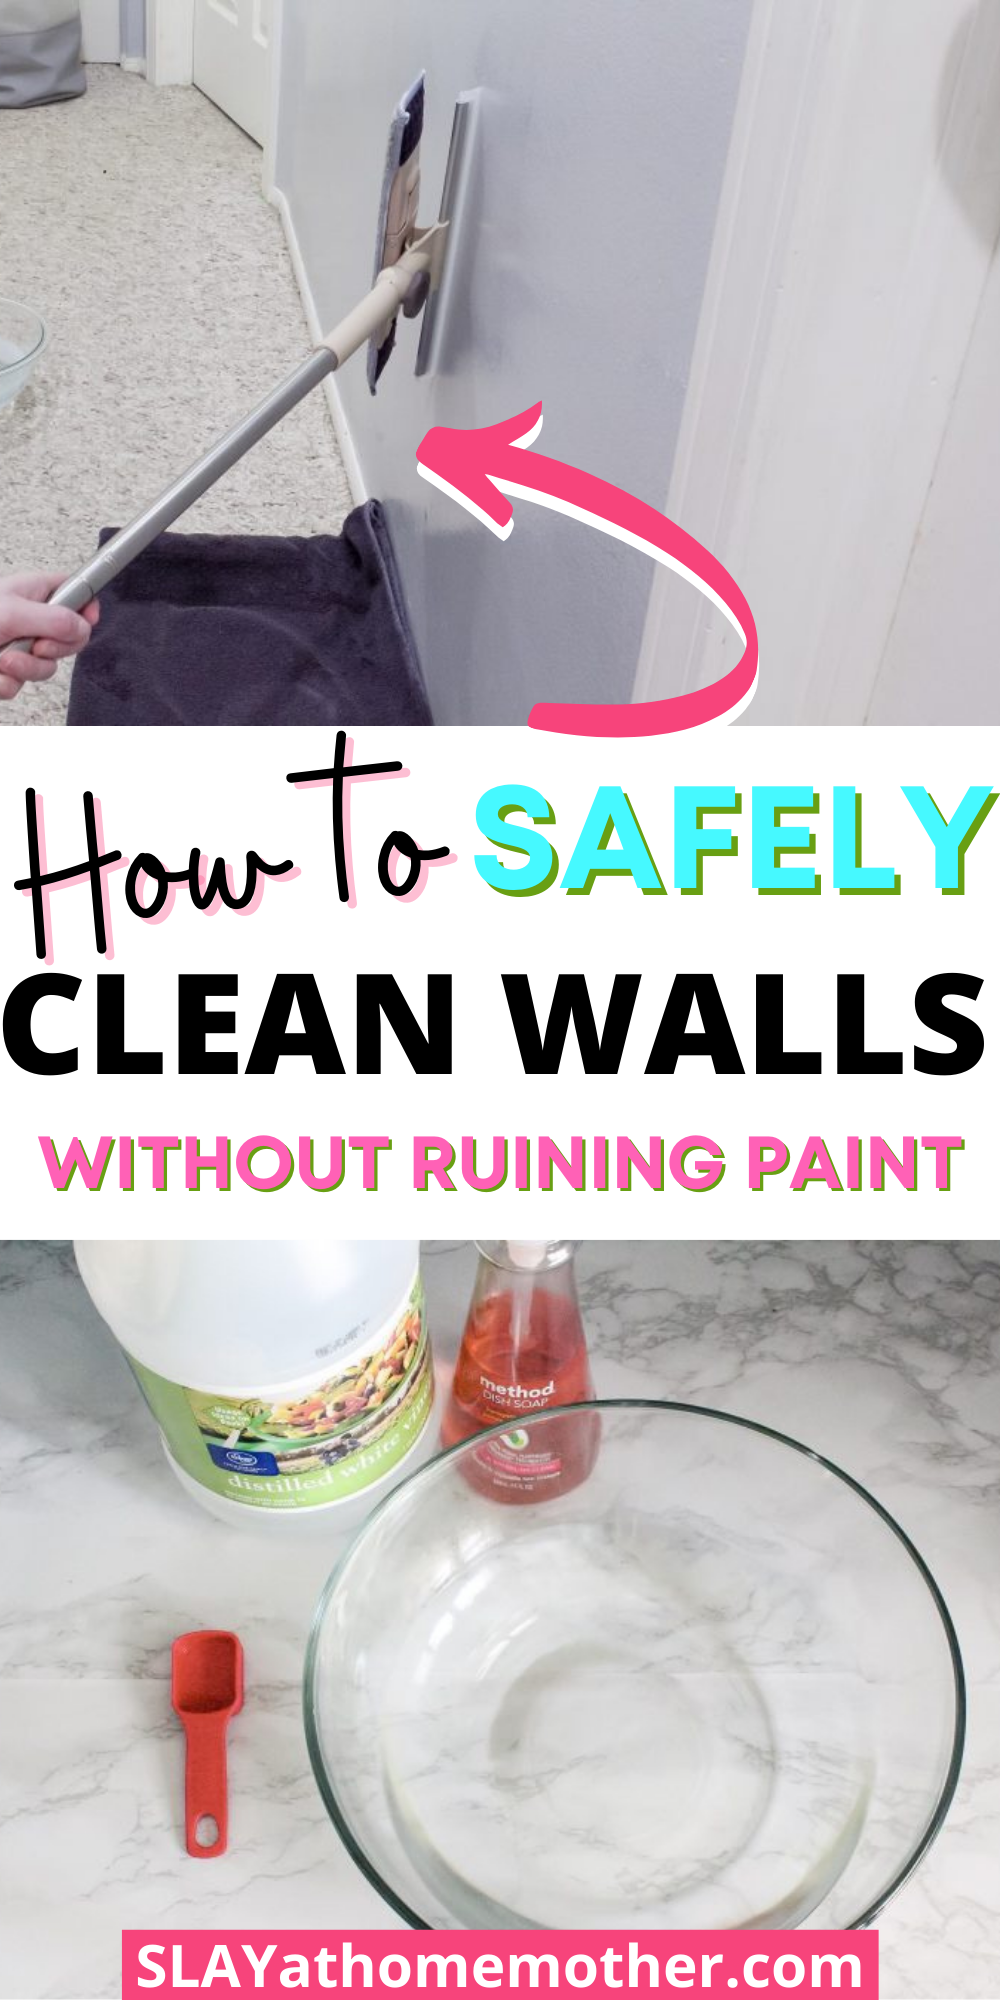 How To Wash Walls - Homemade Wall Cleaner Recipe in 28